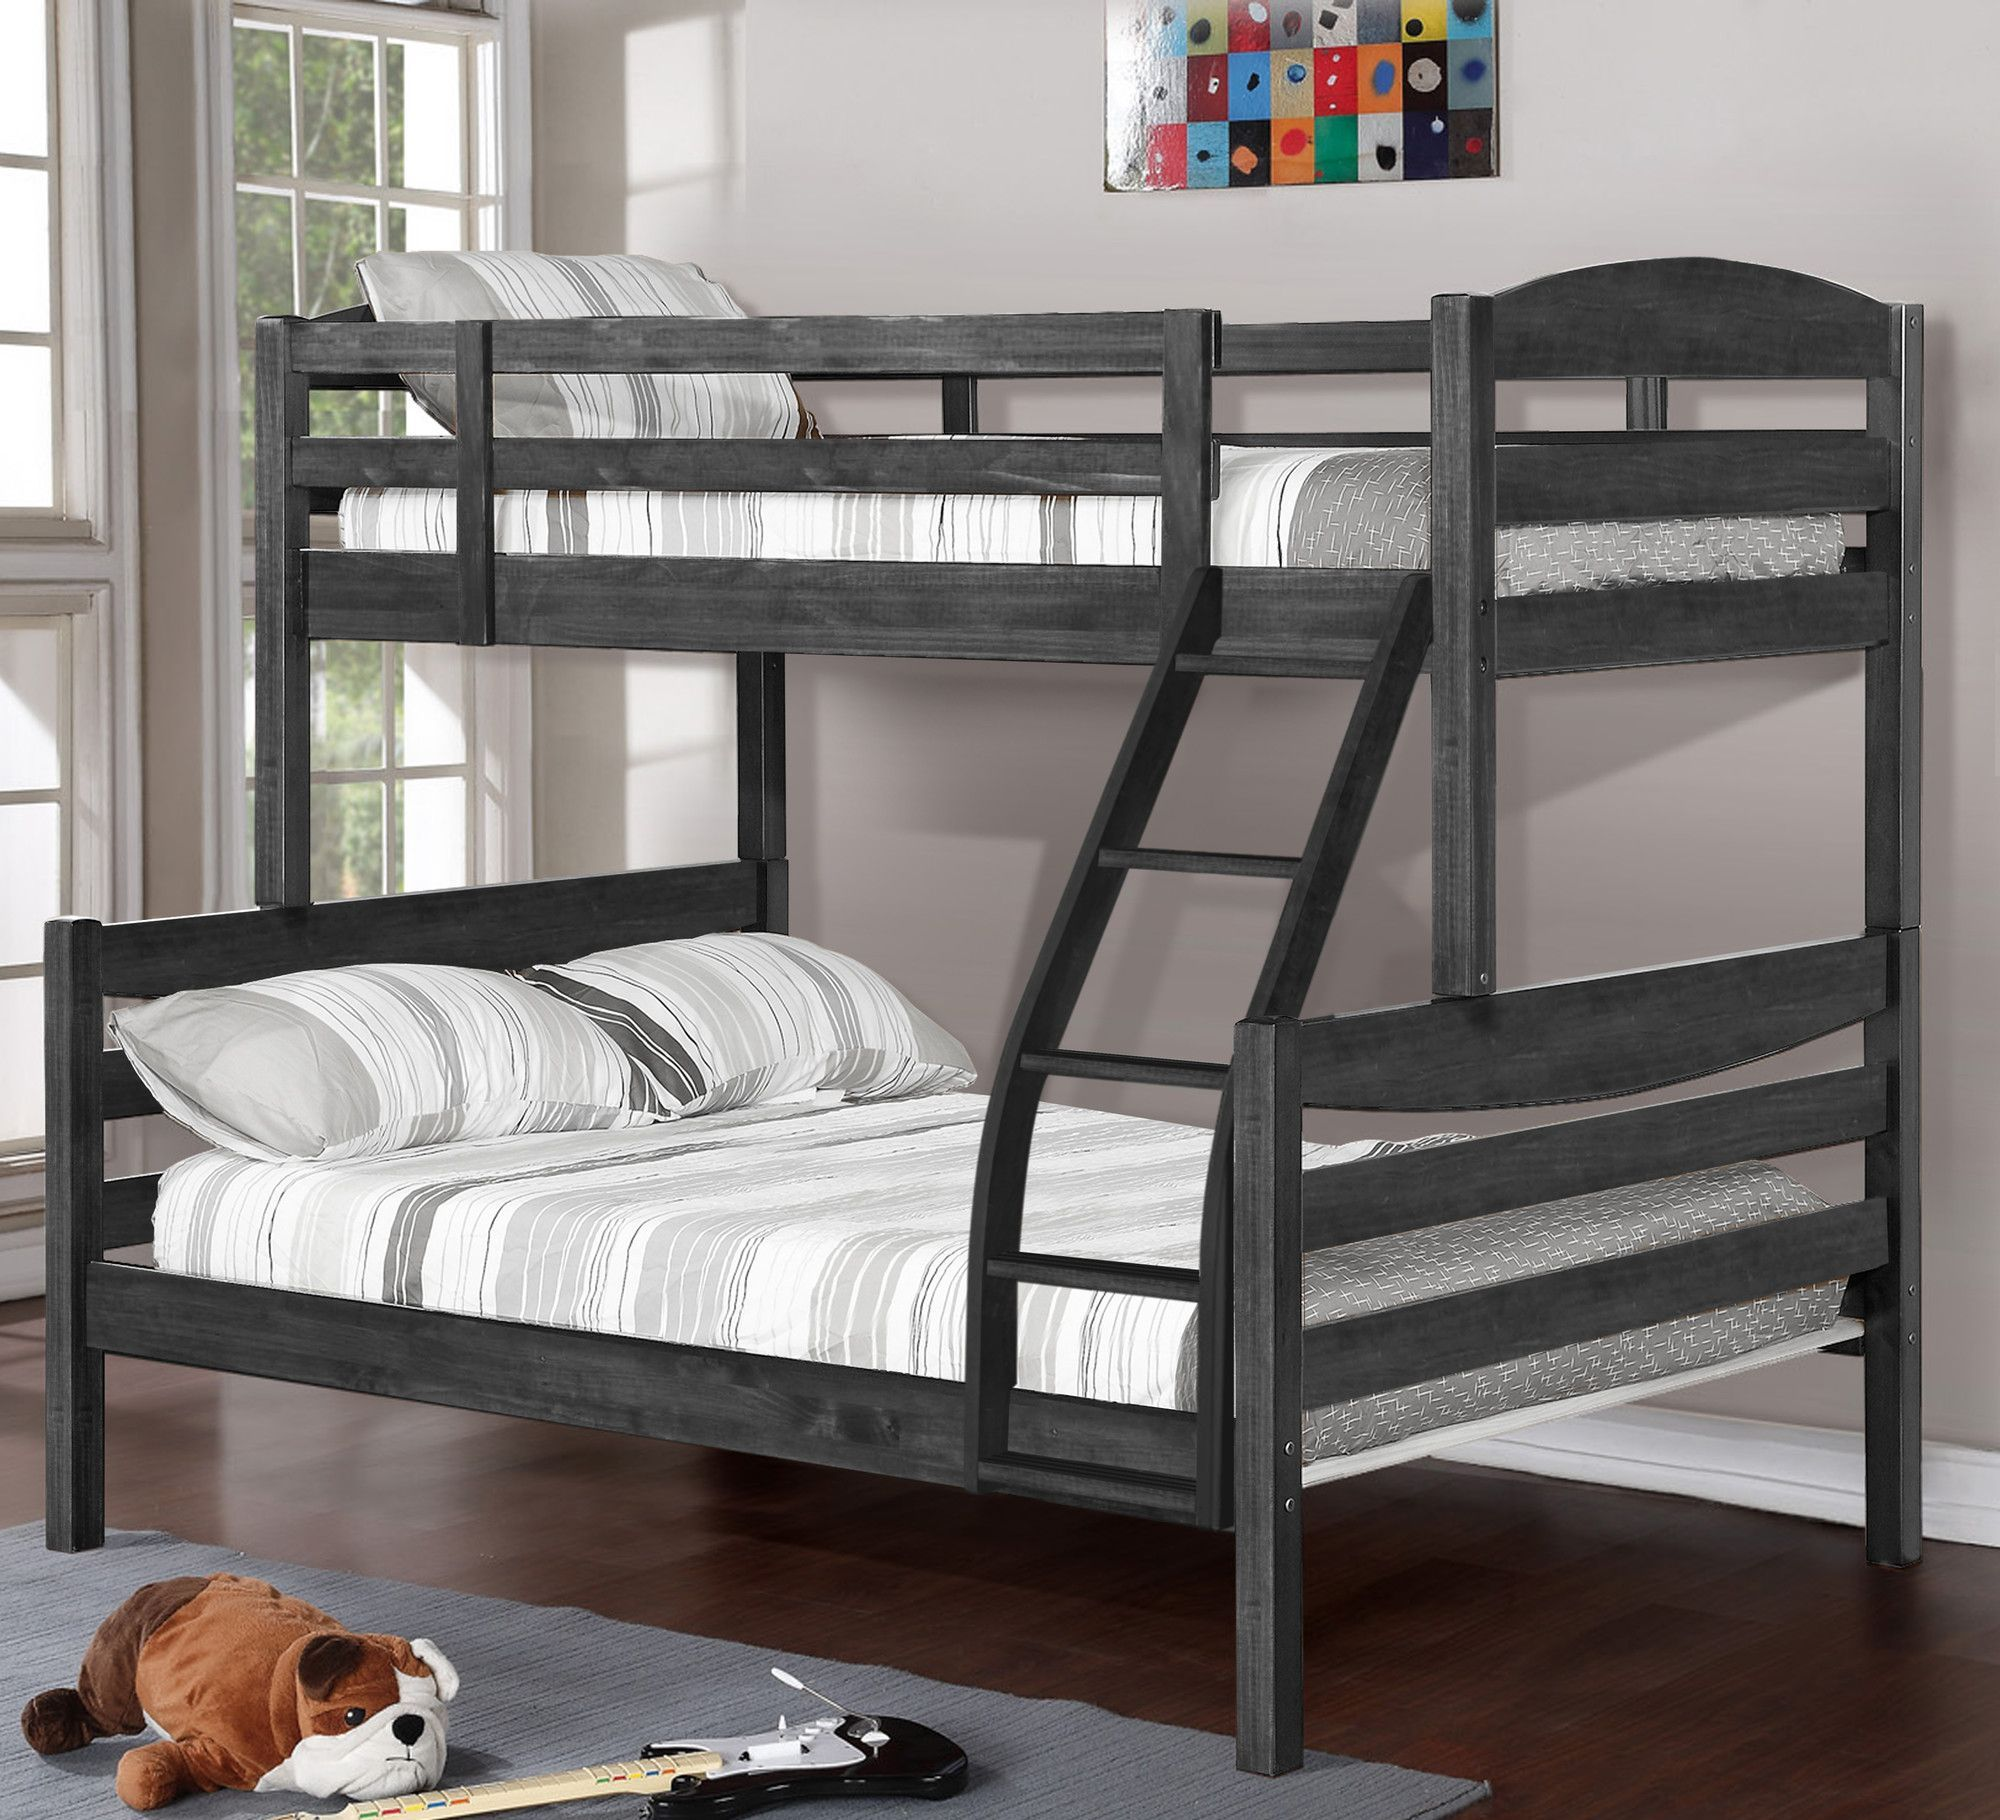 Features Unstackable Style Rustic Material Wood